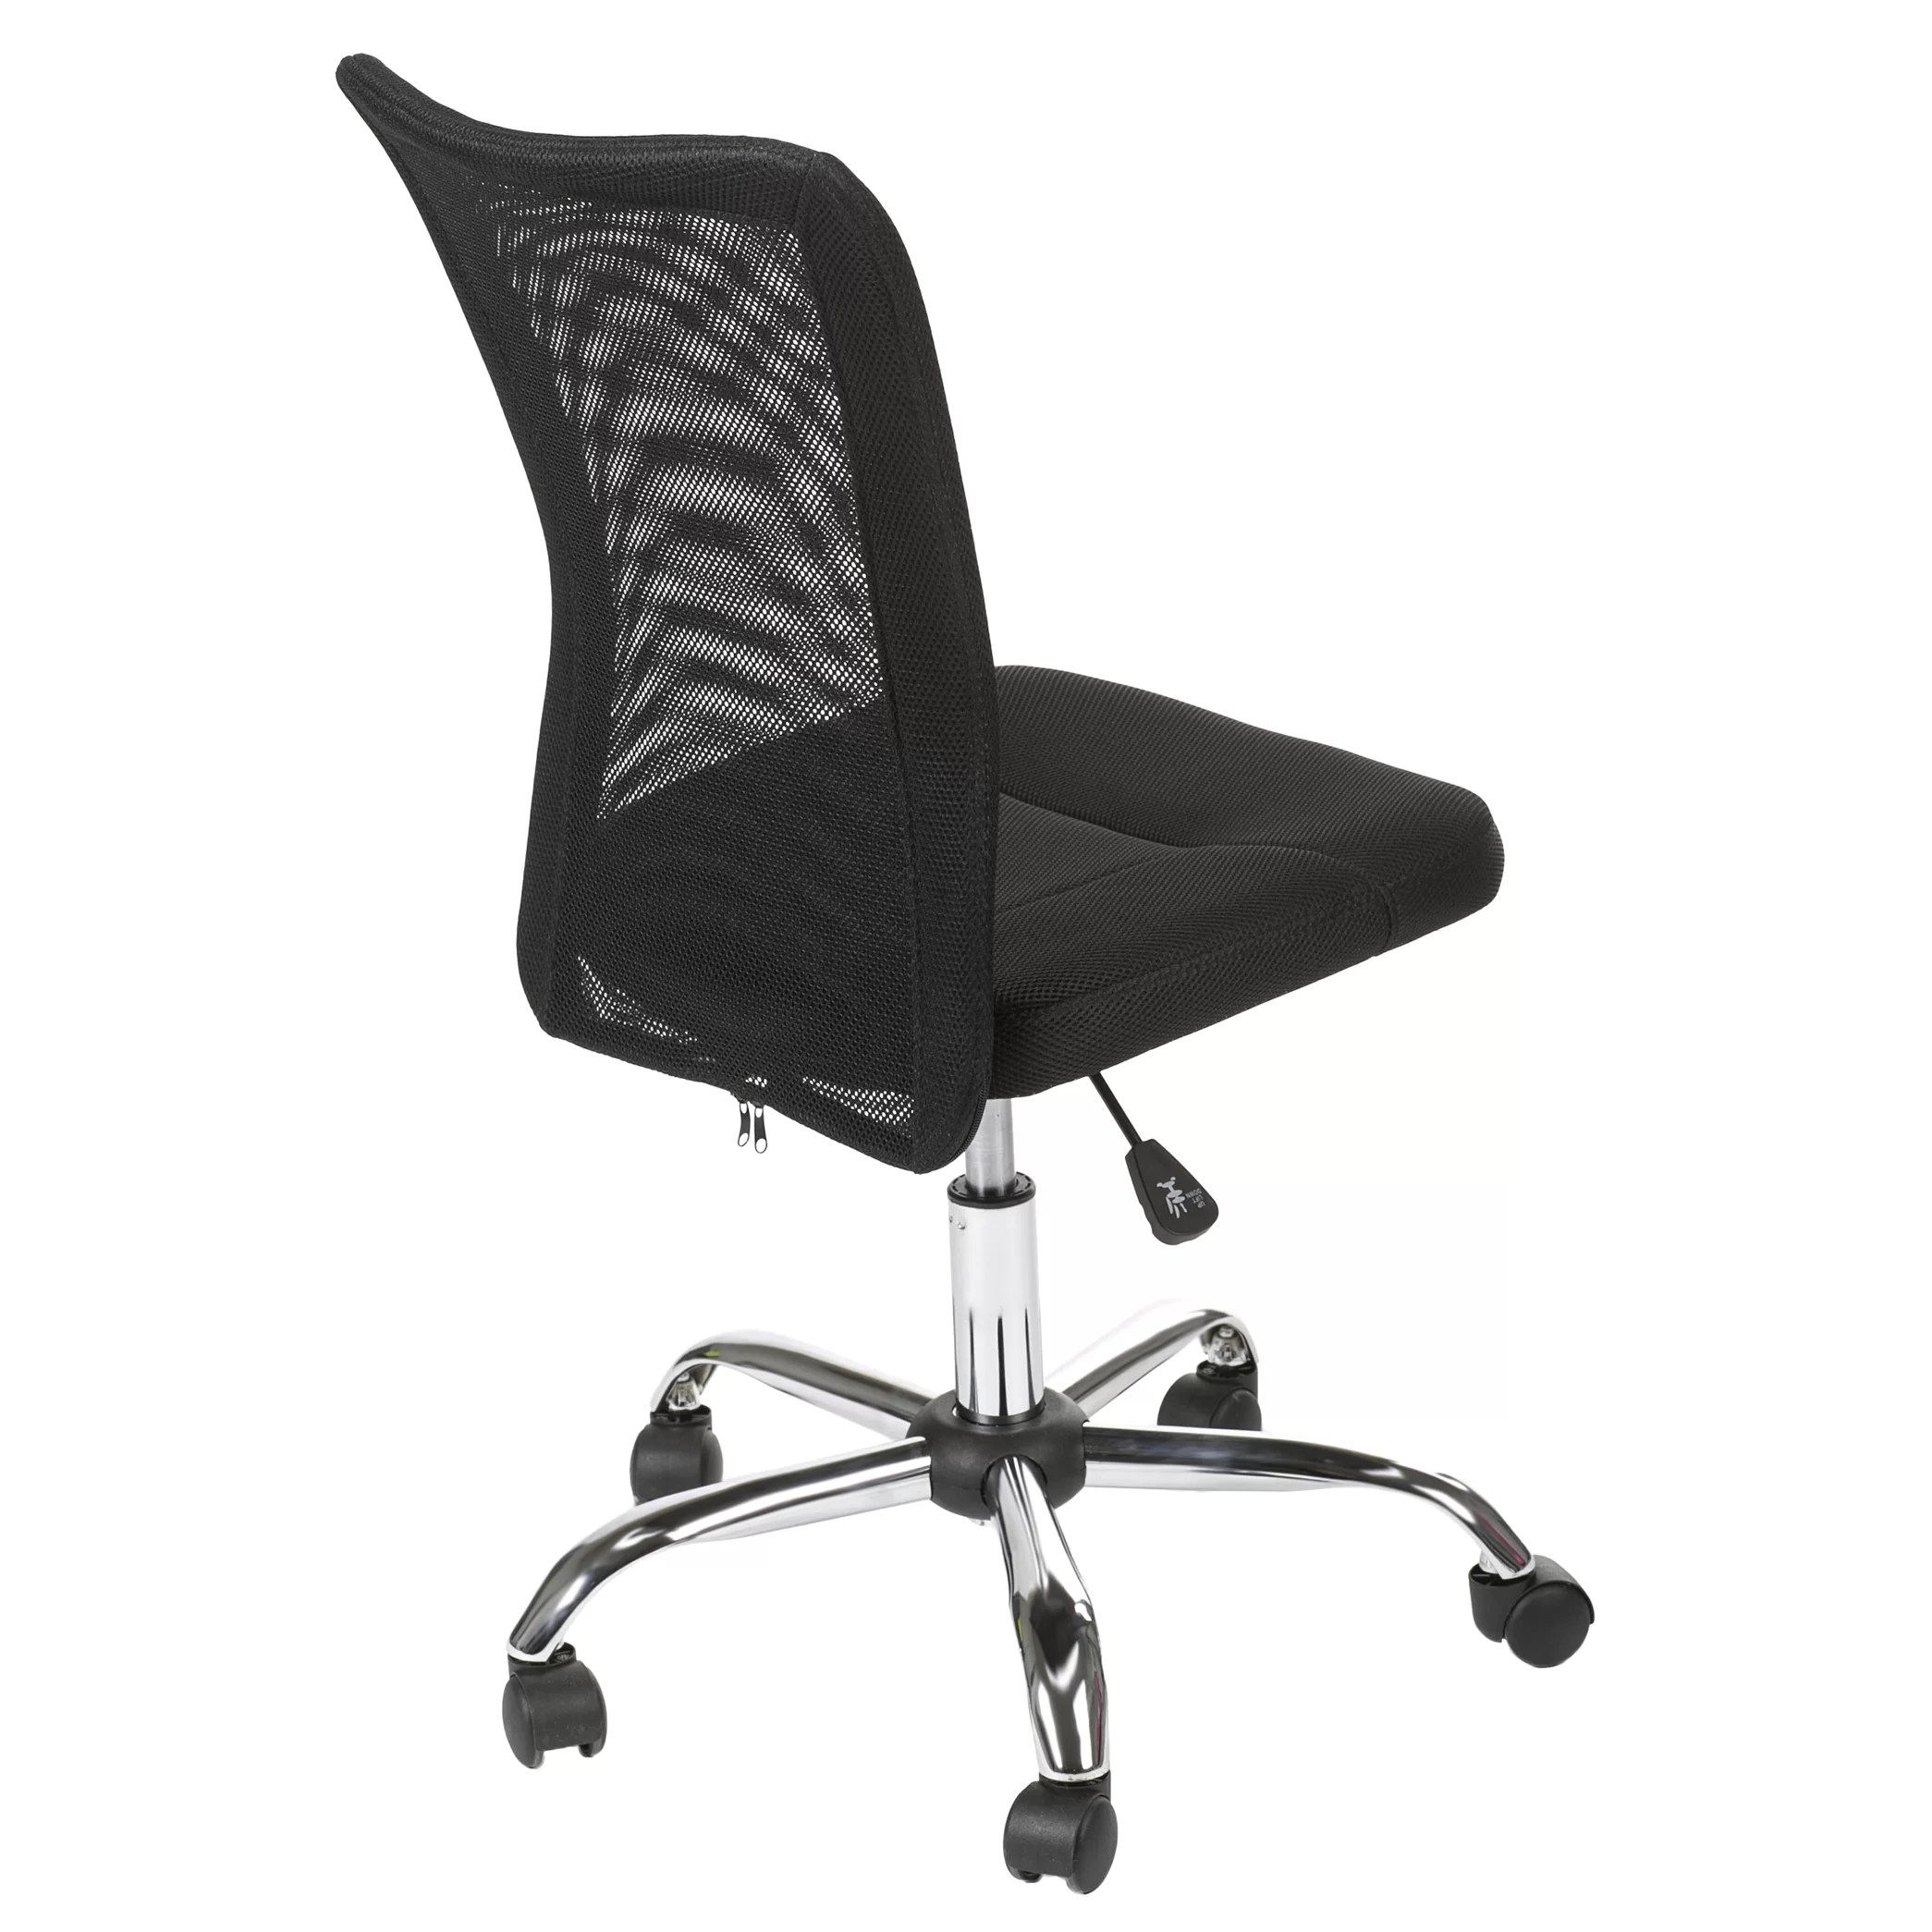 office chair reviews banquet covers to buy merax mesh and wayfair